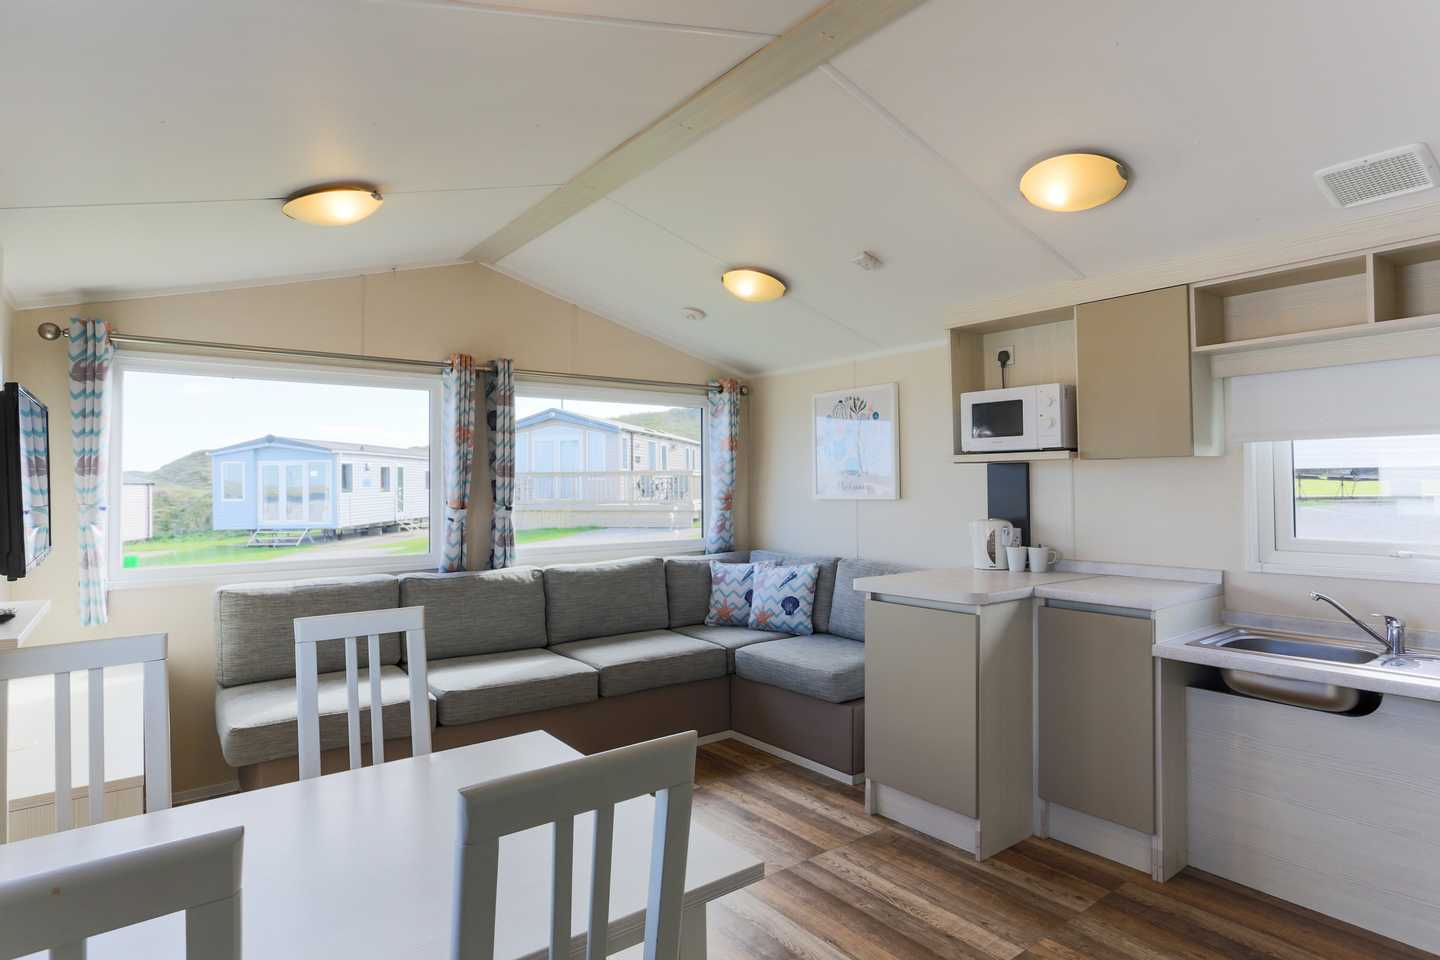 An Adapted caravan dining area with table and chairs